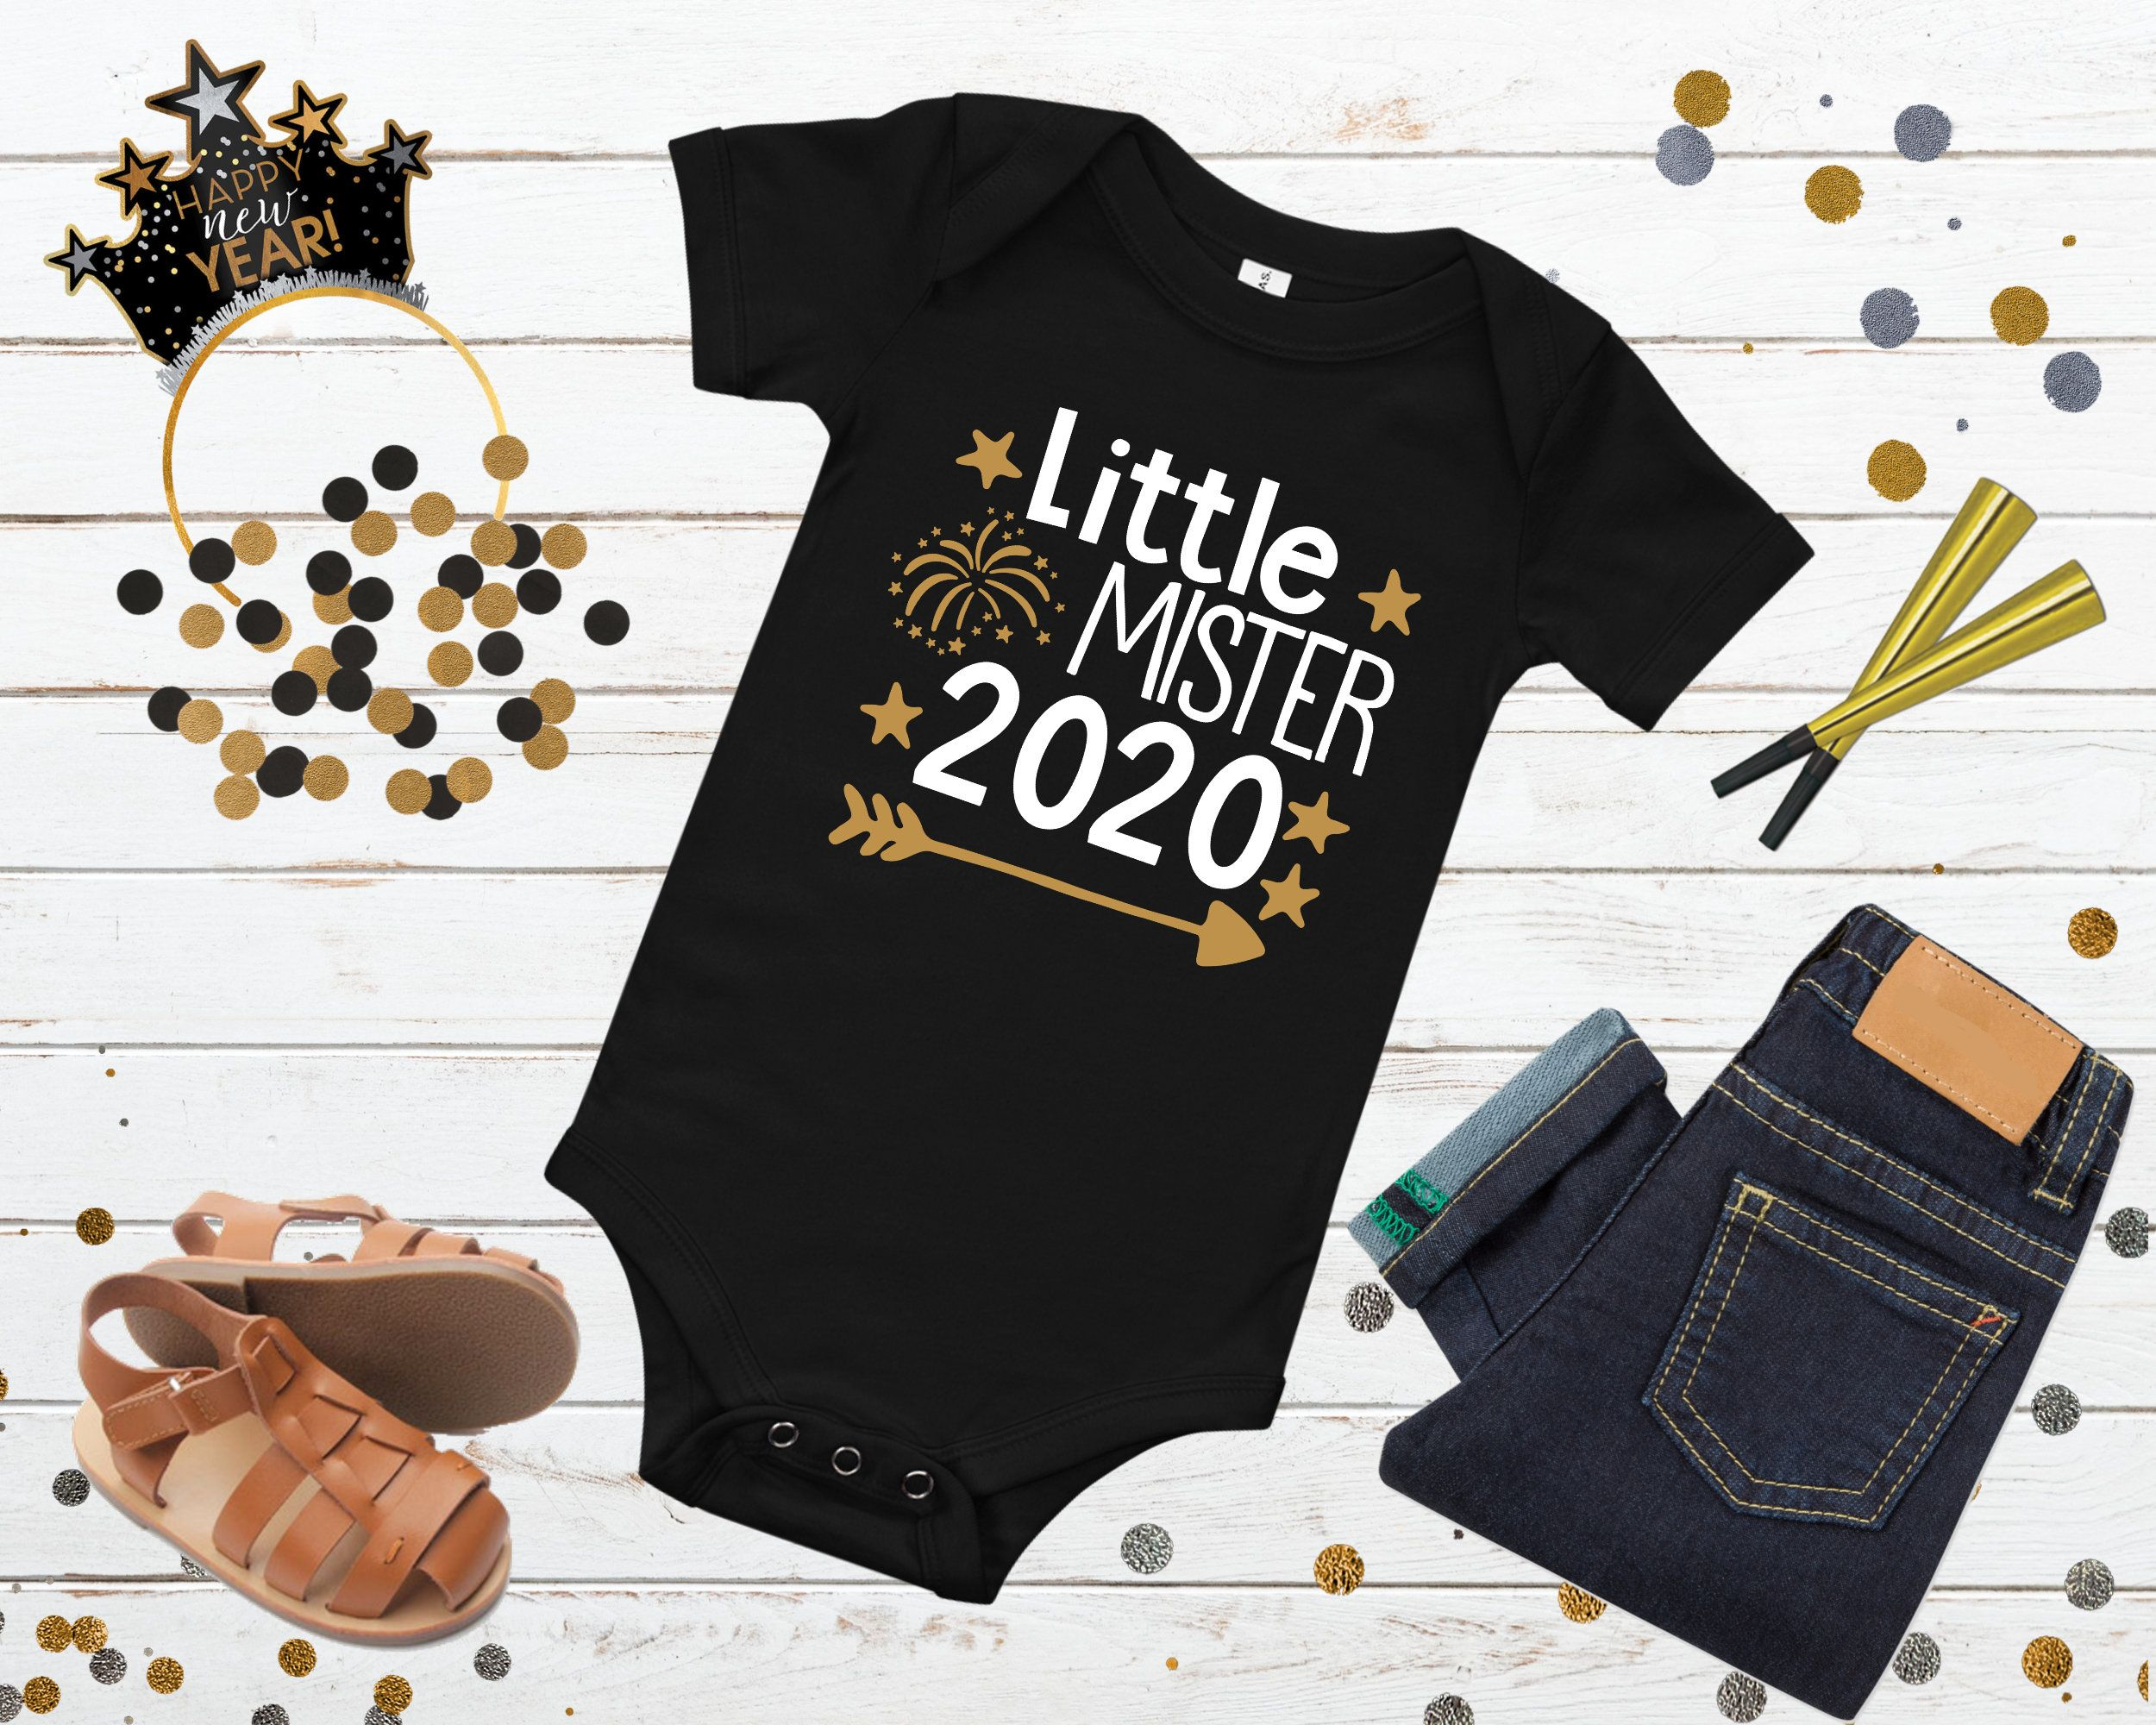 Daddy Little Pud T Shirt Vest Pudding New Dad Christmas Party Baby Grow Gift